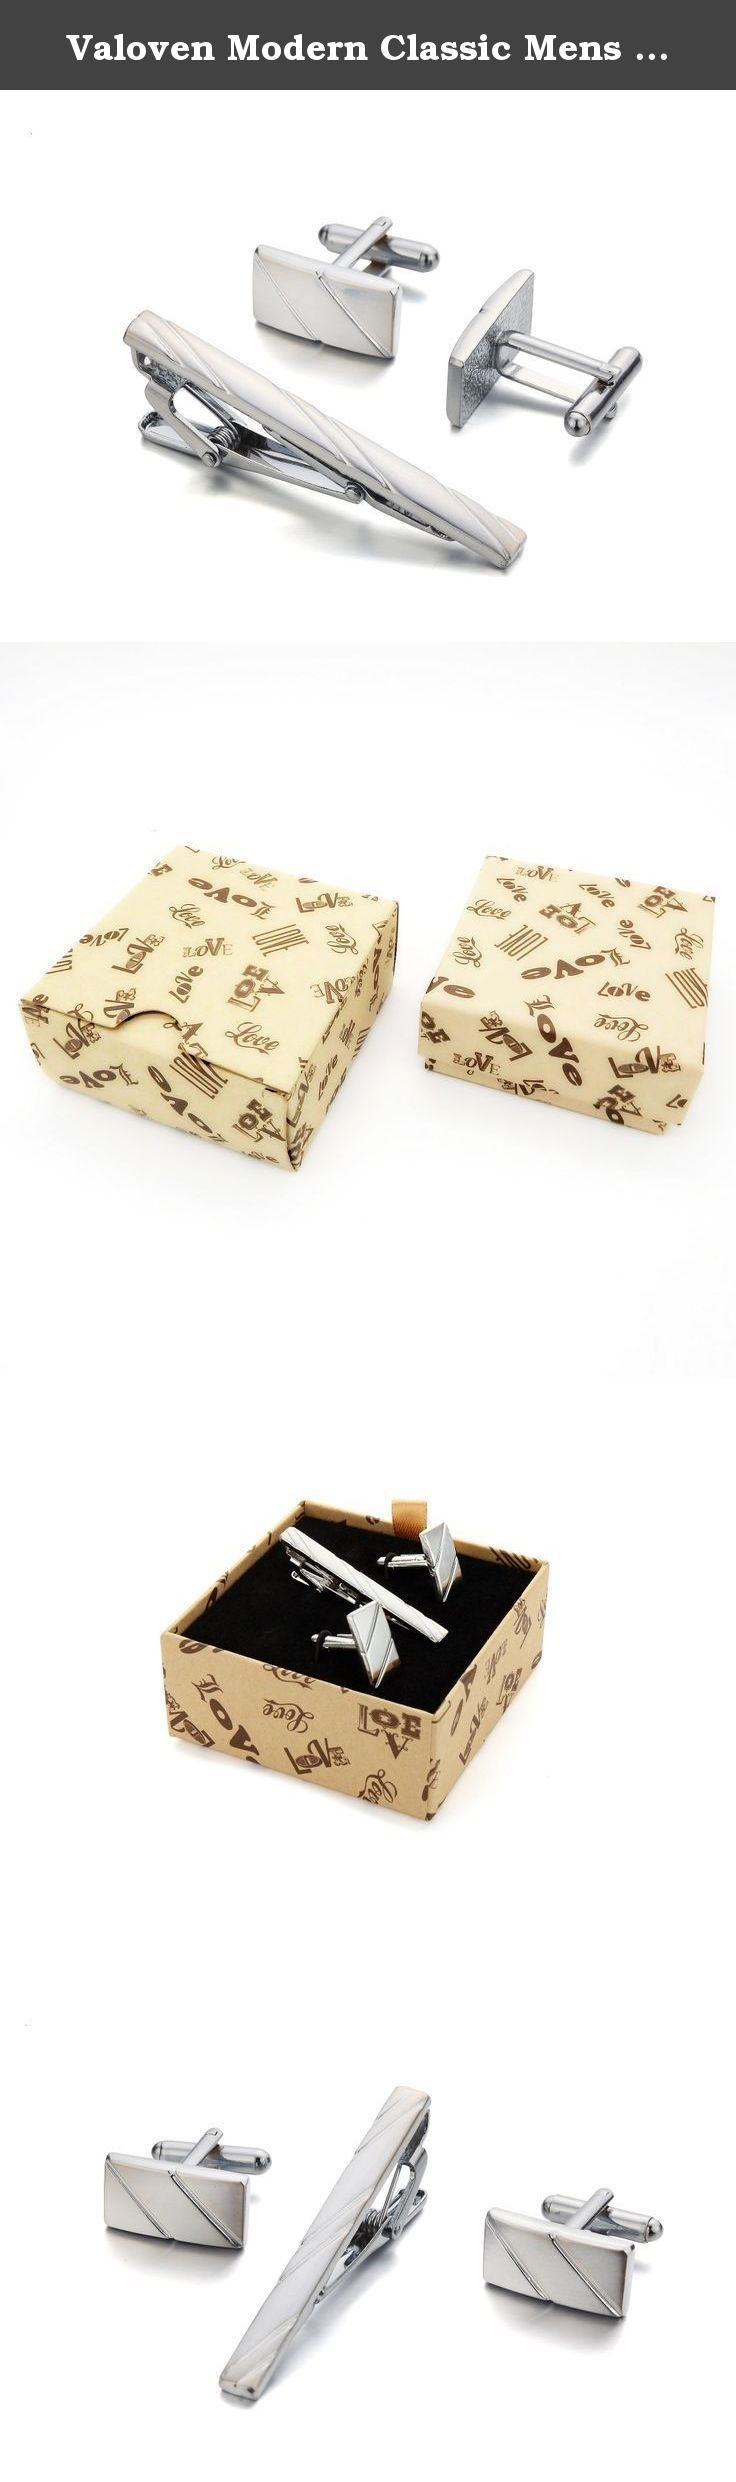 Valoven Modern Classic Mens Silver Tone 2.3 Inches Mens Tie Clip Cuff links Set, Handmade Gift Boxed. Your Reliable & Best Choice of Fashion Jewelry by Valoven Valoven classic men's tie clip cuff links set, not only can Improve the grade of the mens, More Can Reflect the modern fashionable breath, show men's calm and charm. Valoven classic men's tie clip cuff links set has the characteristics of both formal and fashion, is more of a neat, relaxed feeling. It's easy to match with your…